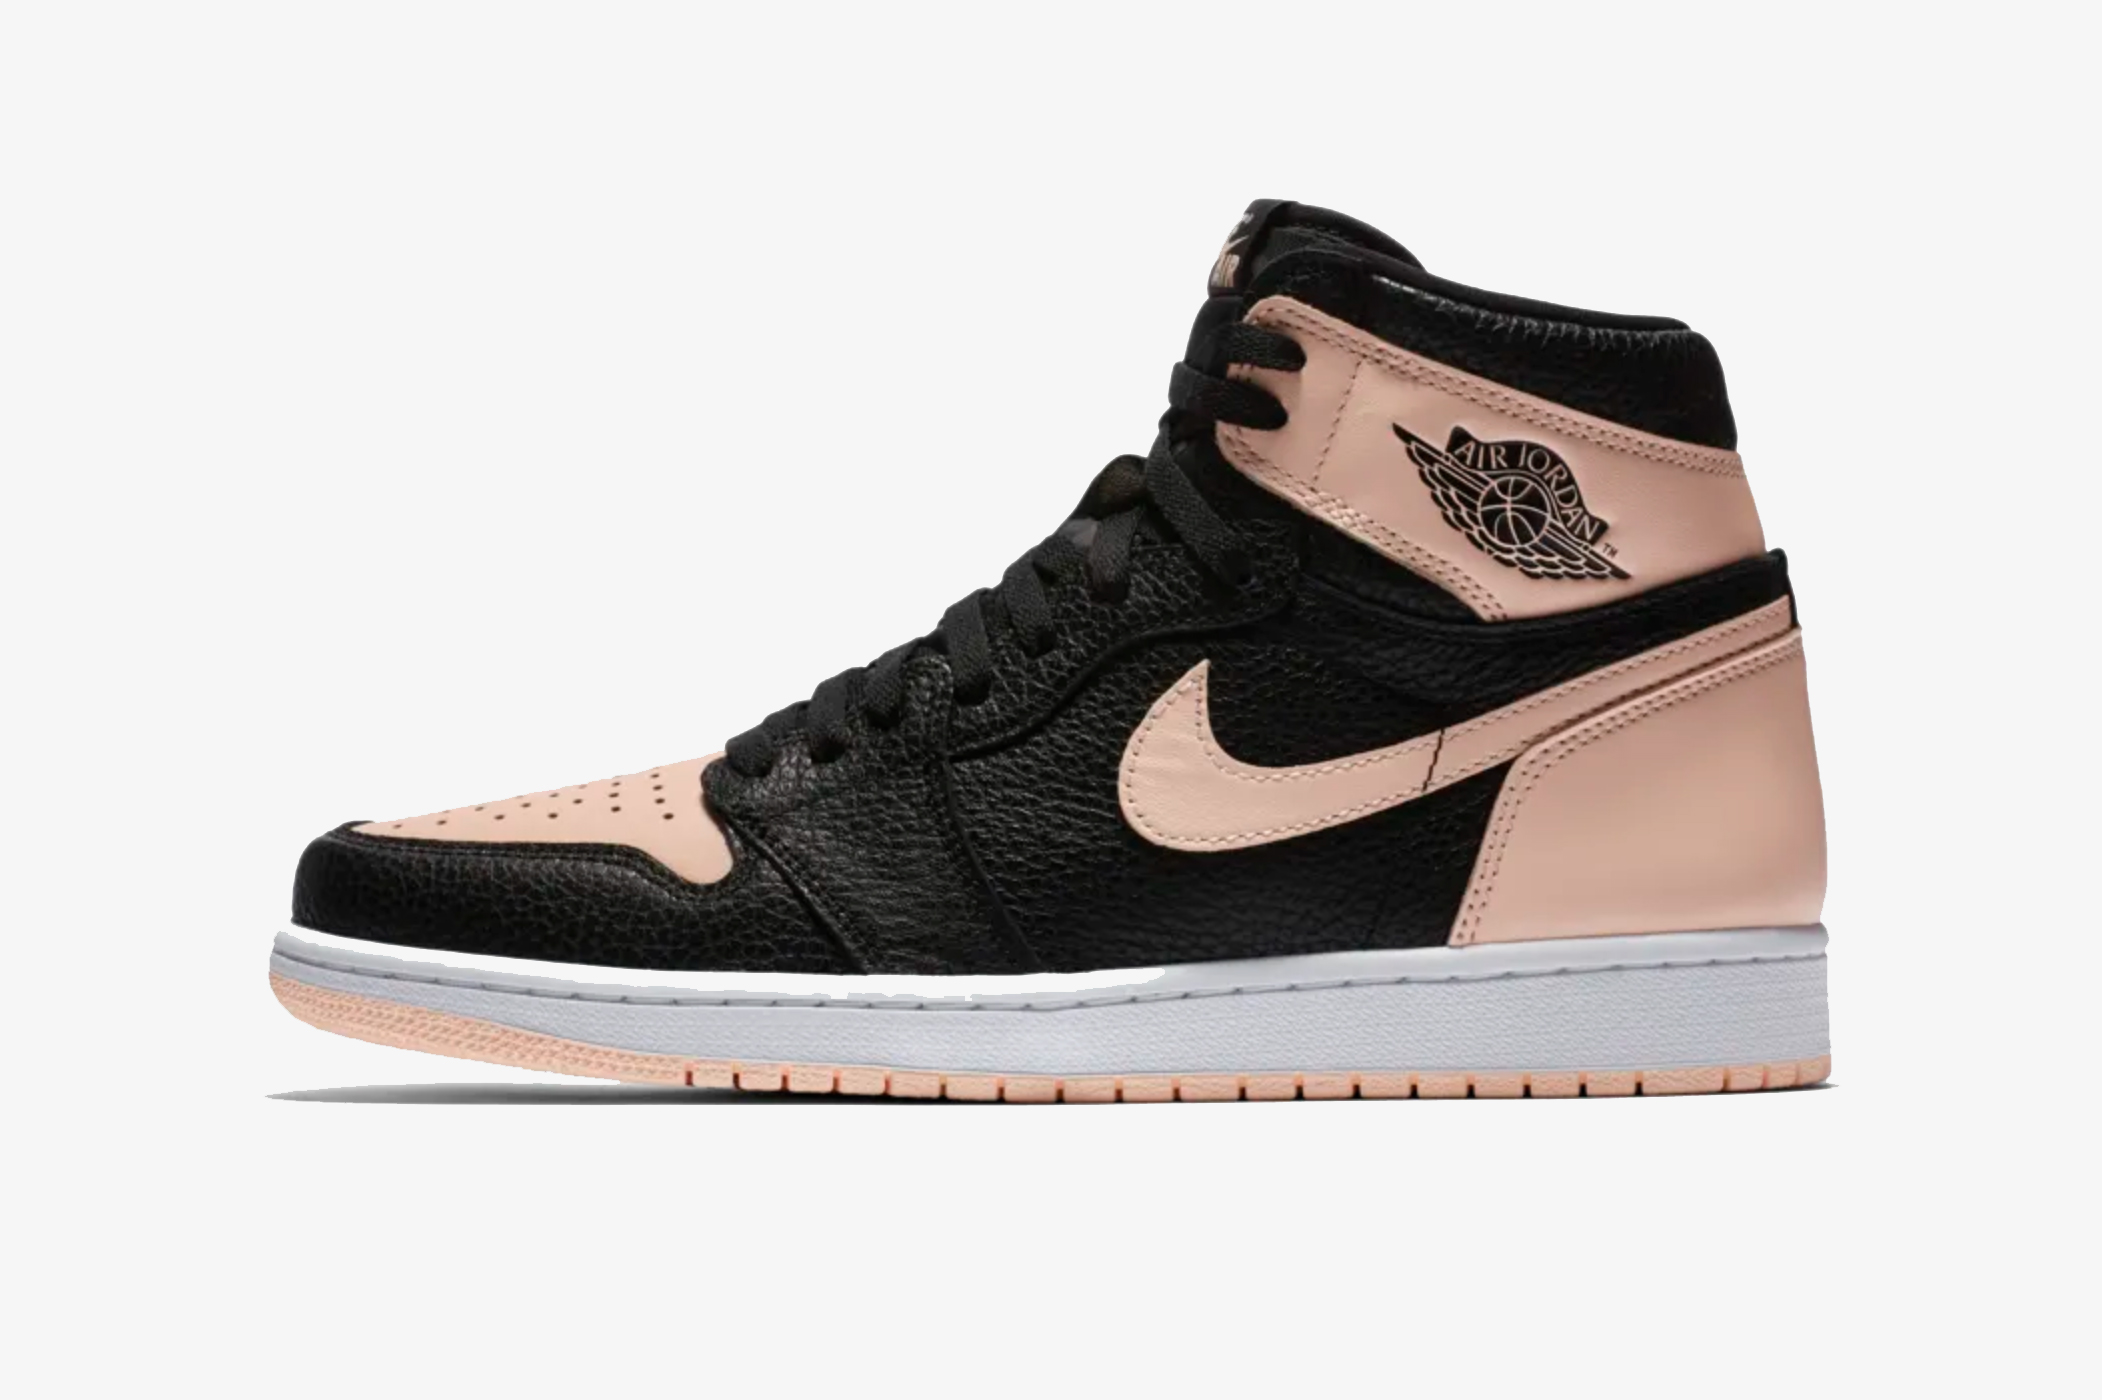 Air Jordan 1 Black Pink Colorway Release